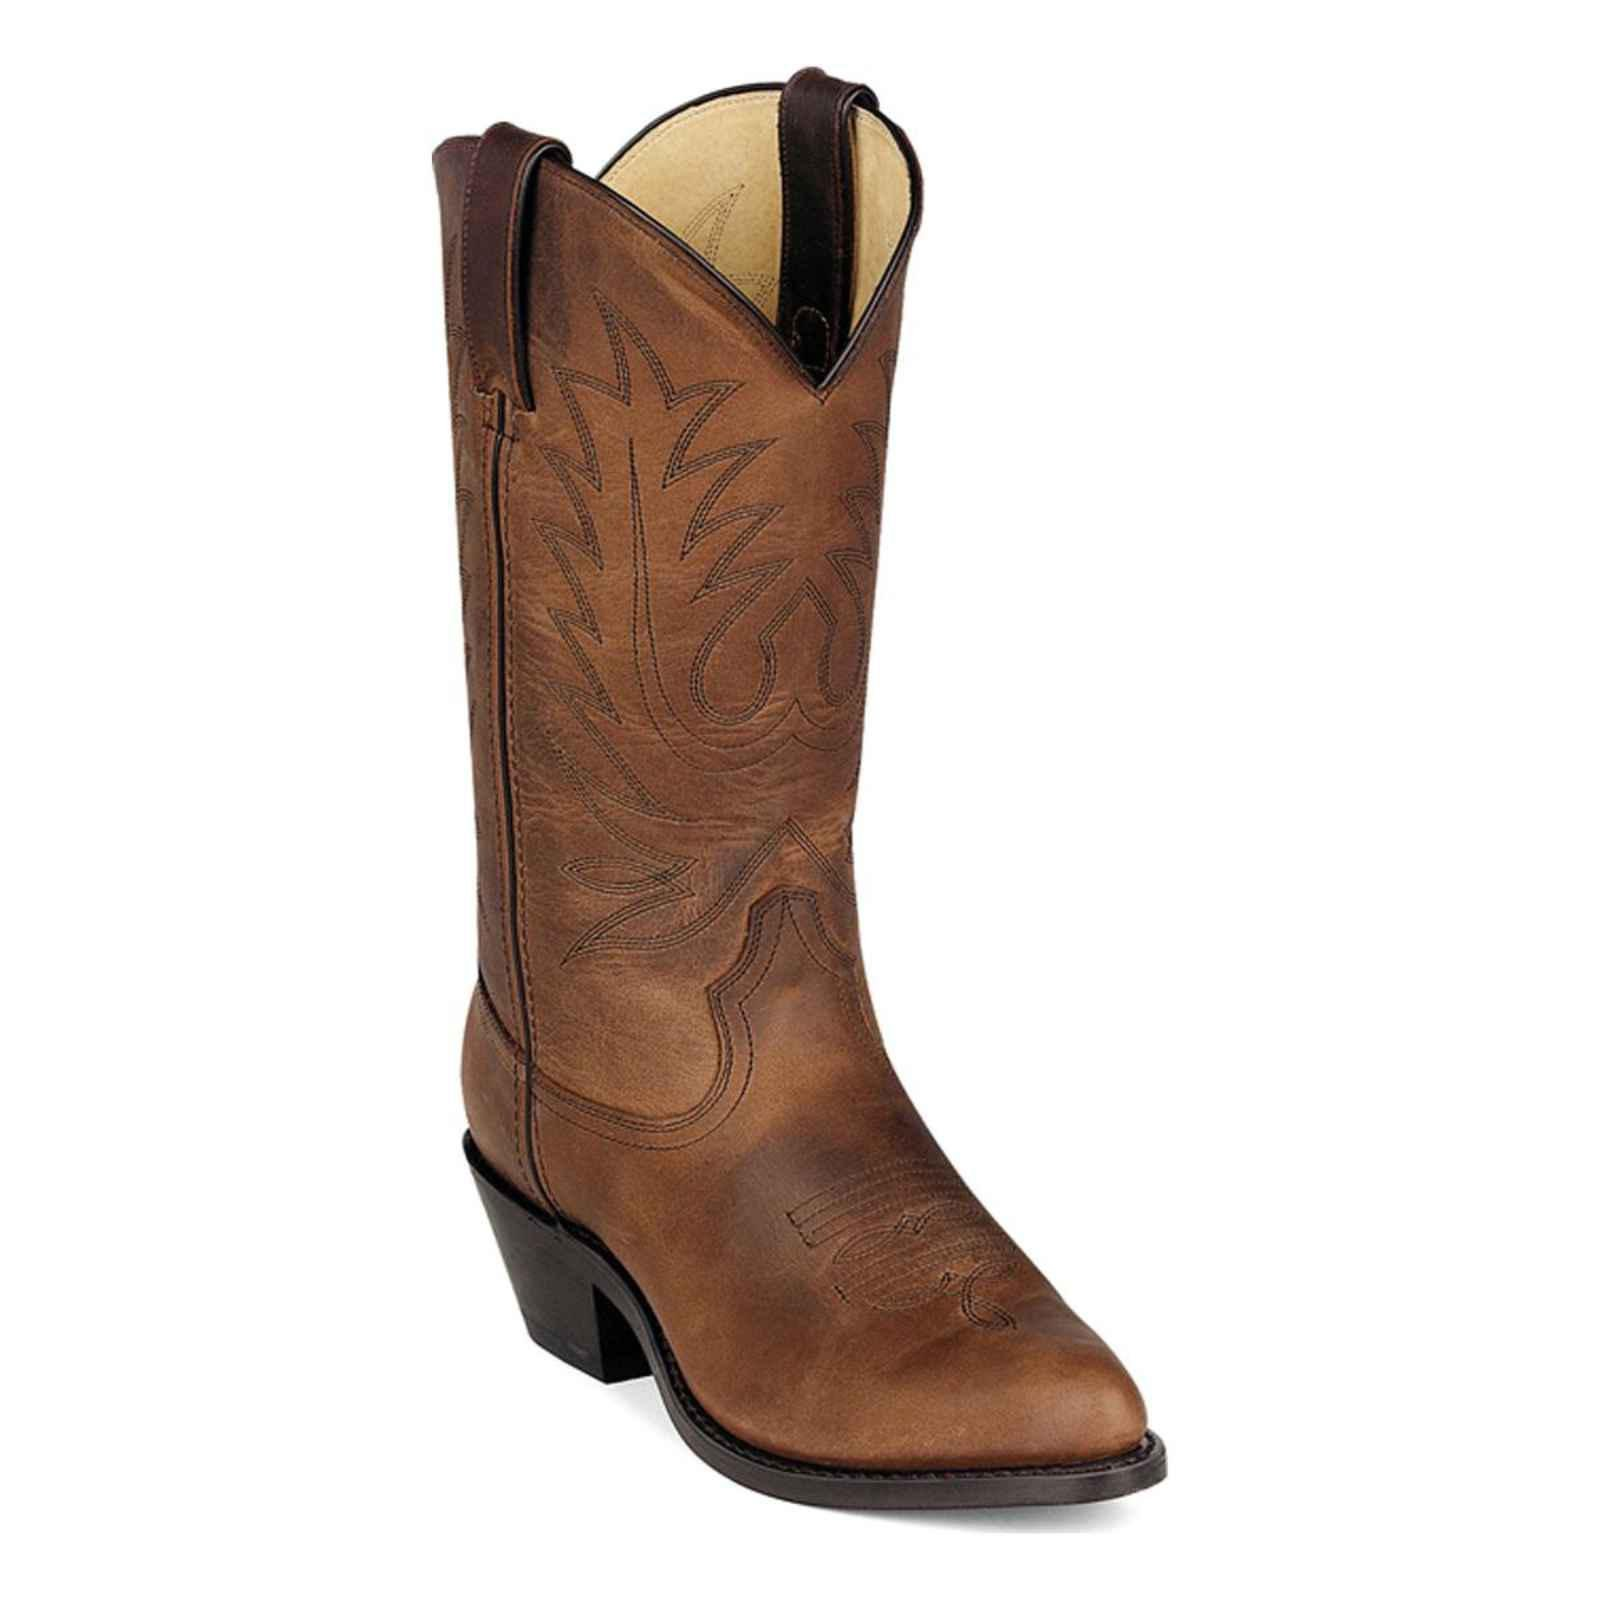 Durango Women's 11'' Shaft Stitch Western Boots,Brown,7.5 W